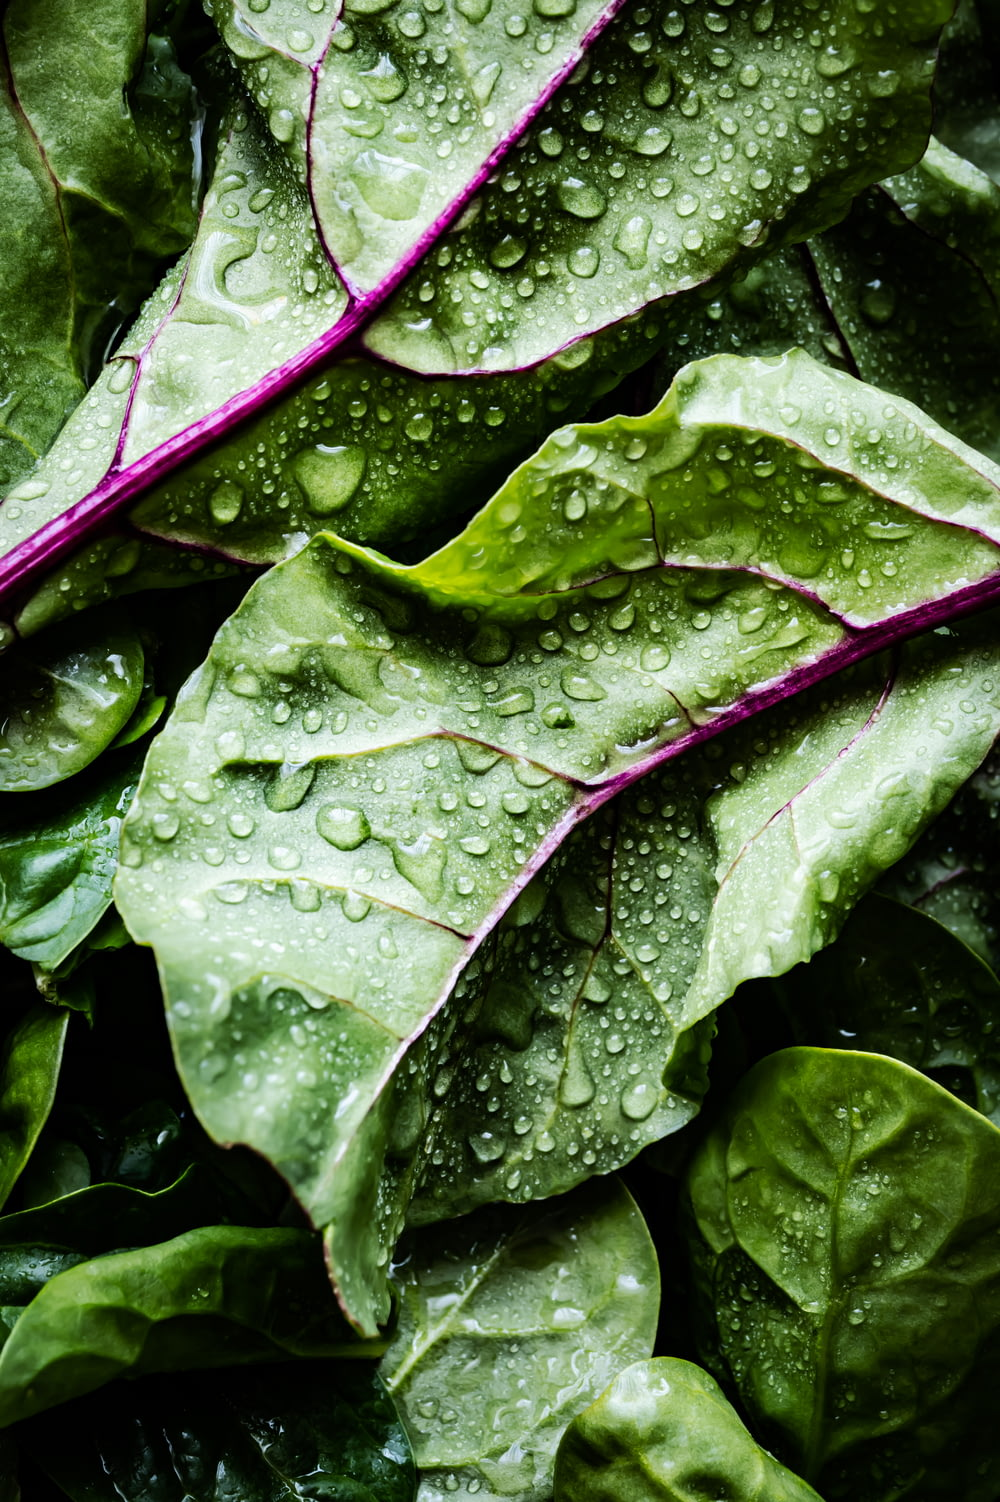 green and purple leaves with water droplets